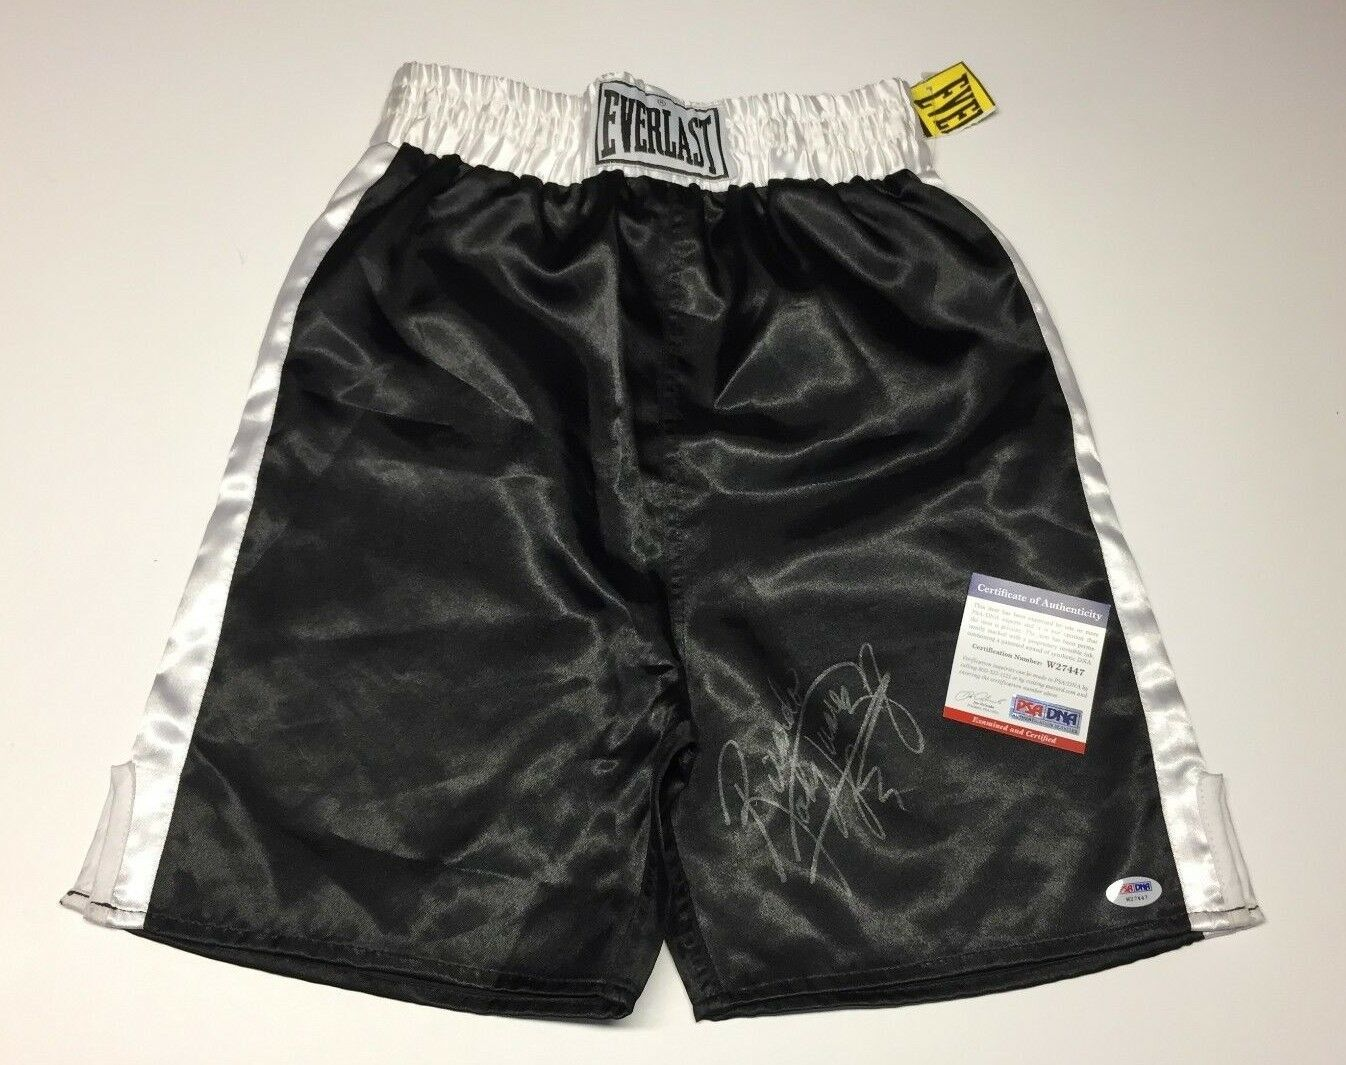 Ricardo 'Rocky' Juarez Signed Black Everlast Boxing Trunks PSA W27447